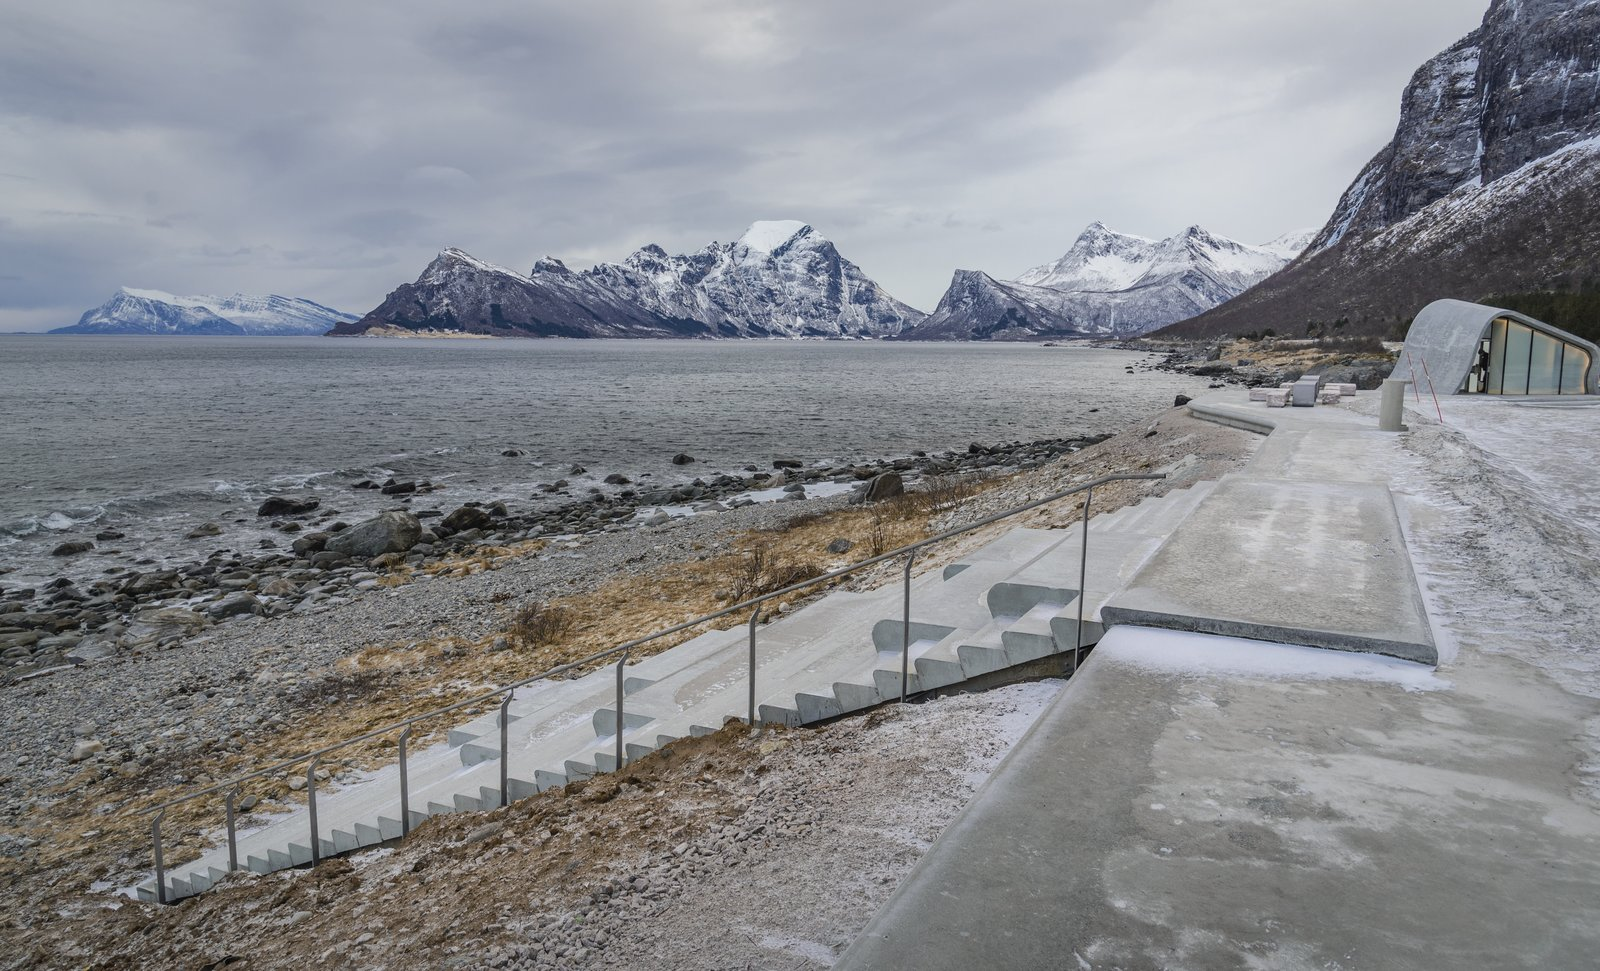 Staircase, Concrete Tread, and Metal Railing The amphitheater-style seating leads down to the beach area and provides stunning panoramic views of the fjord.  Photo 5 of 9 in This Concrete Rest Stop Will Make You Want to Visit Norway